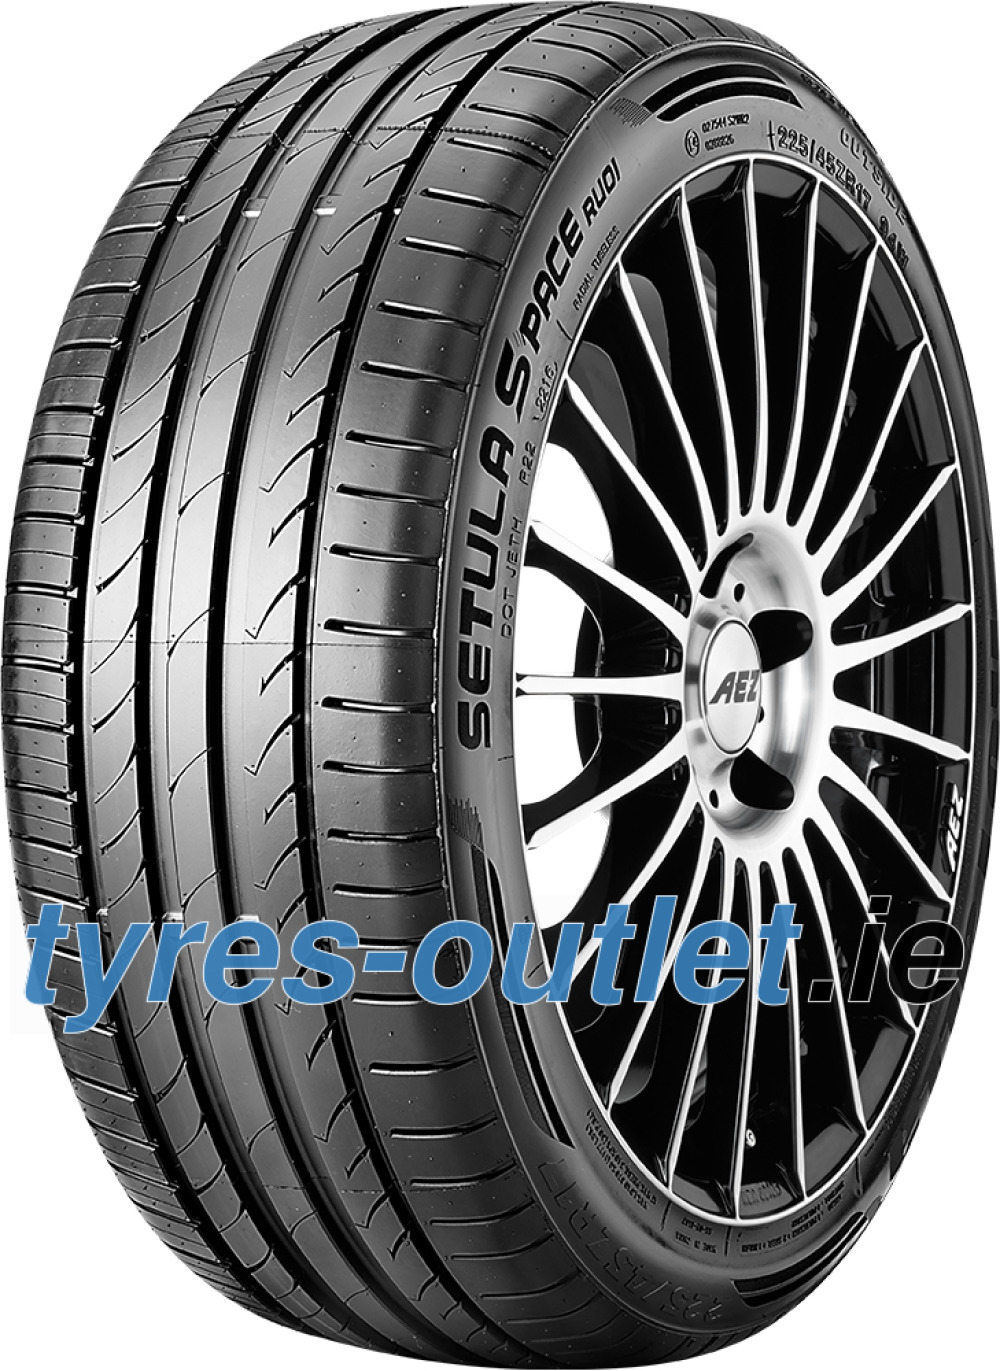 Rotalla Setula S-Pace RUO1 ( 215/40 R16 86W XL with rim protection (MFS) )